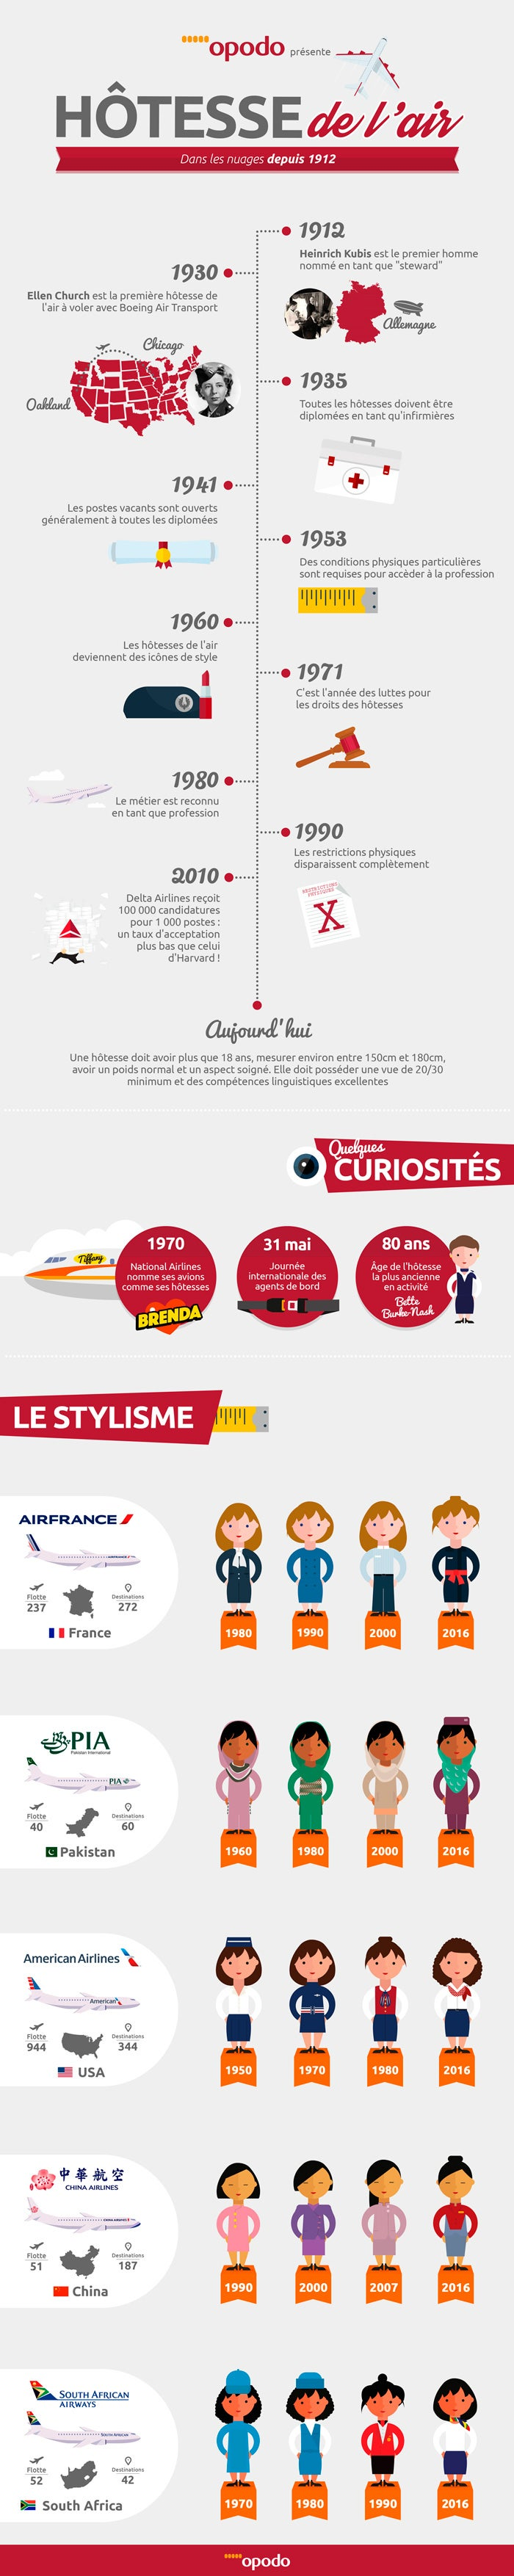 infographique-hotesse-de-l-air